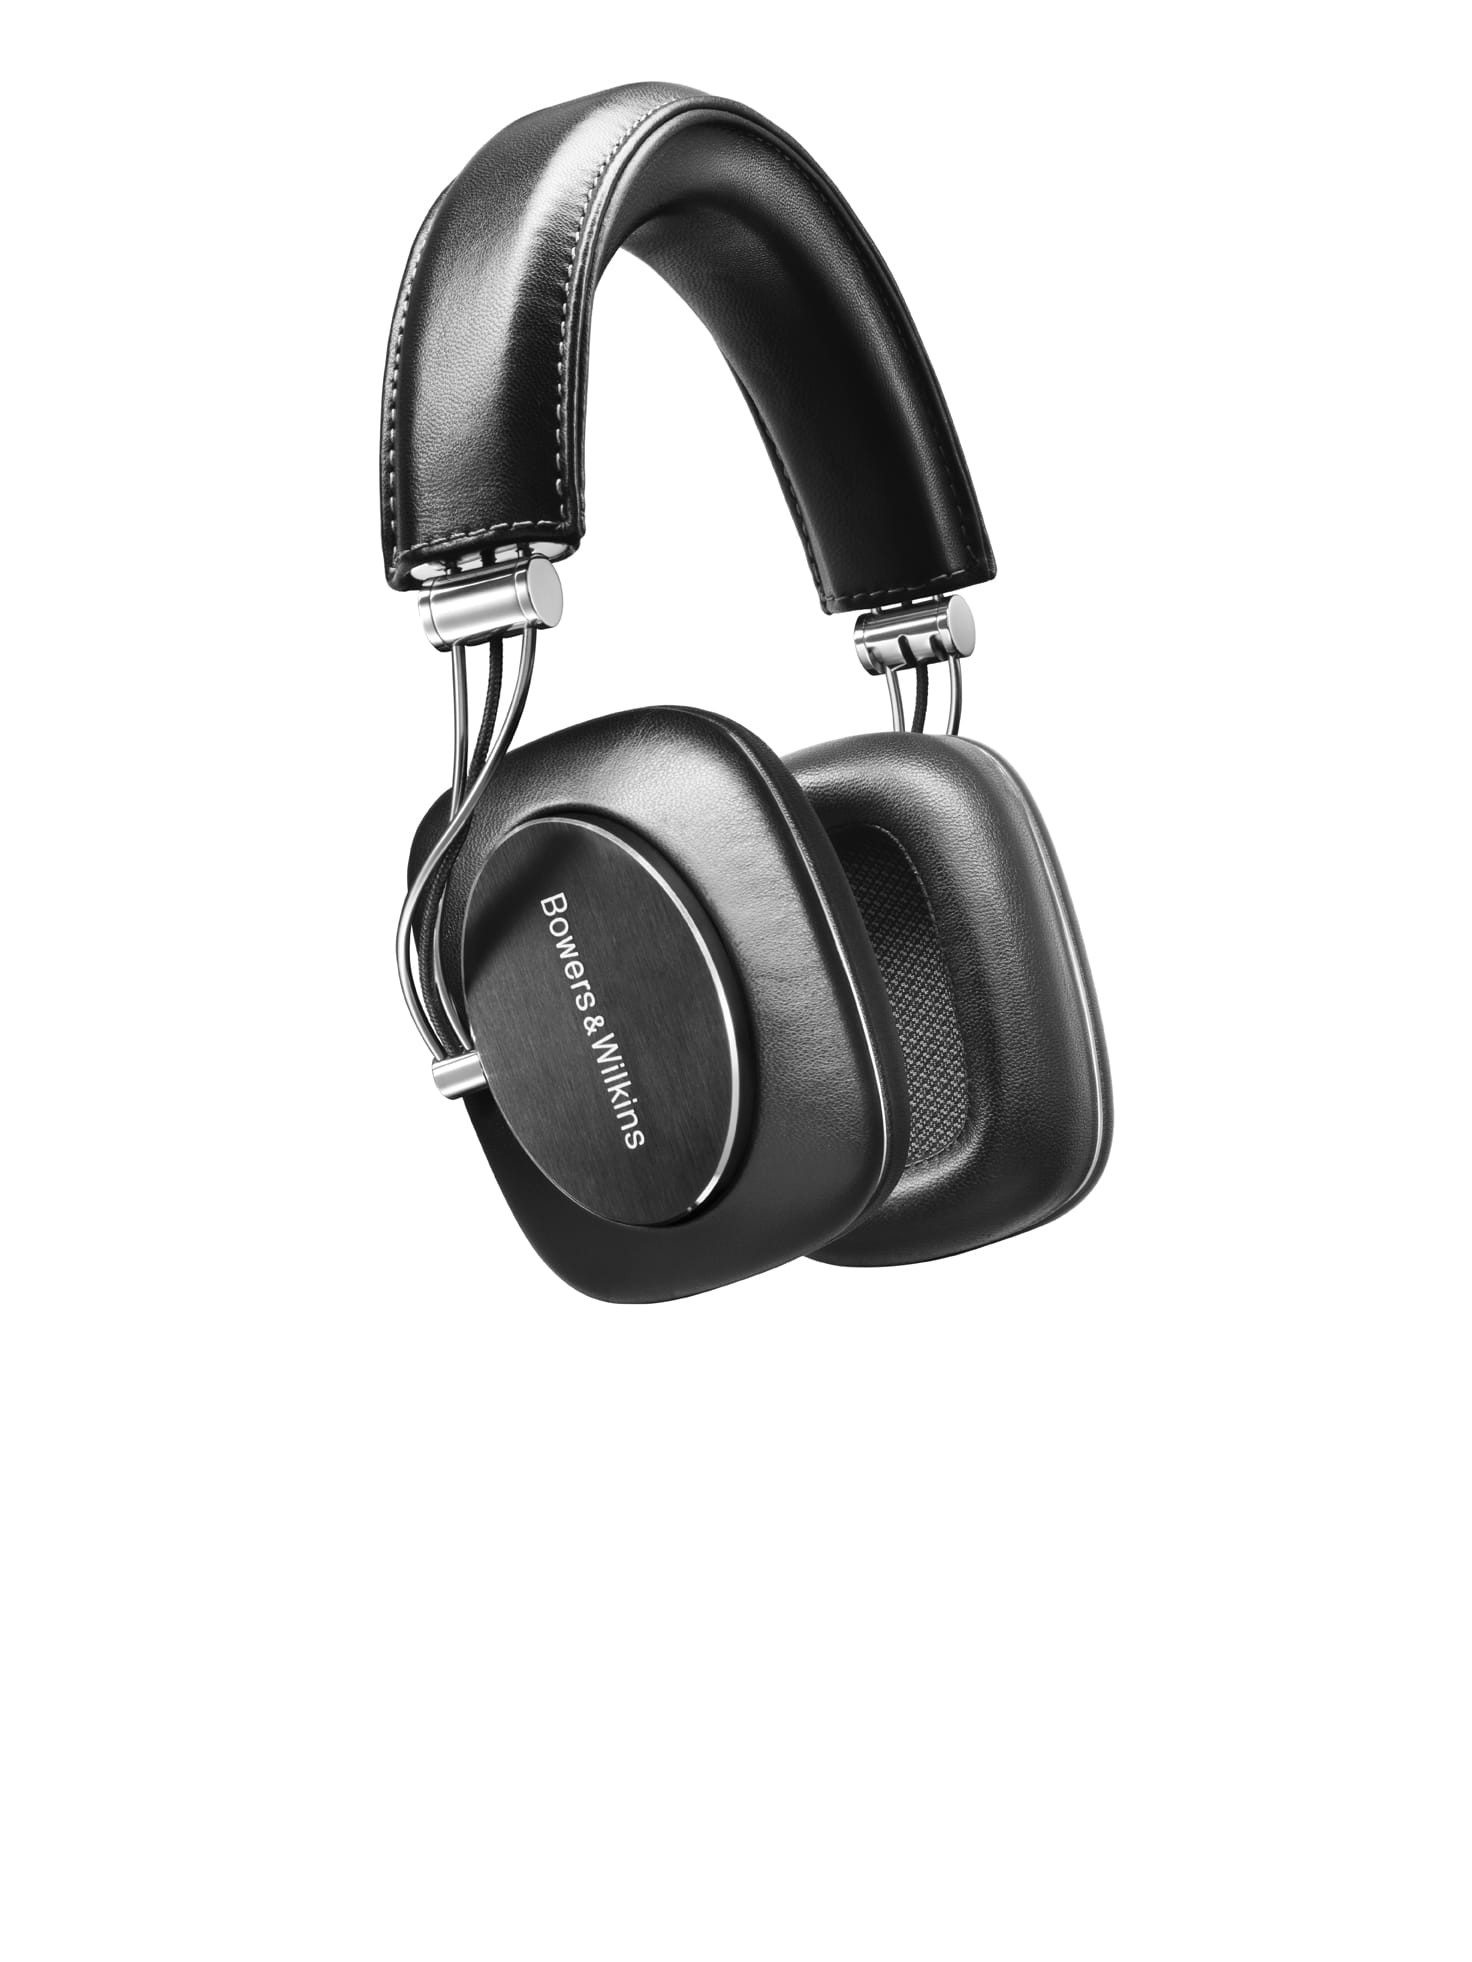 P7 Wireless + Audioquest Dragonfly Black